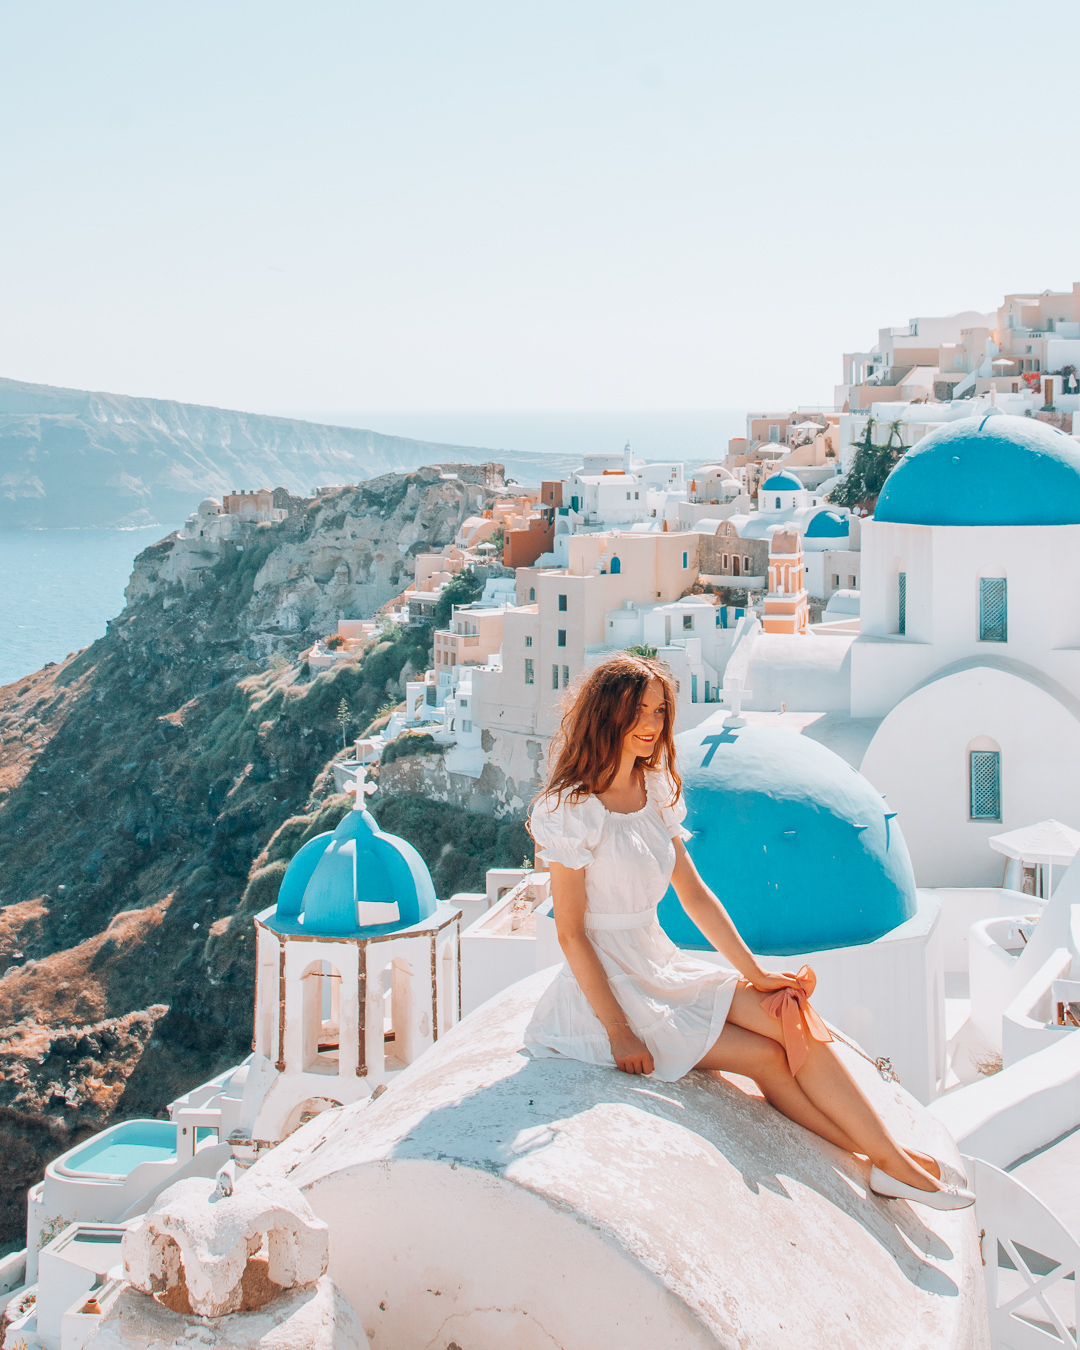 Girl sitting on a rooftop in Santorini with blue domes in the background